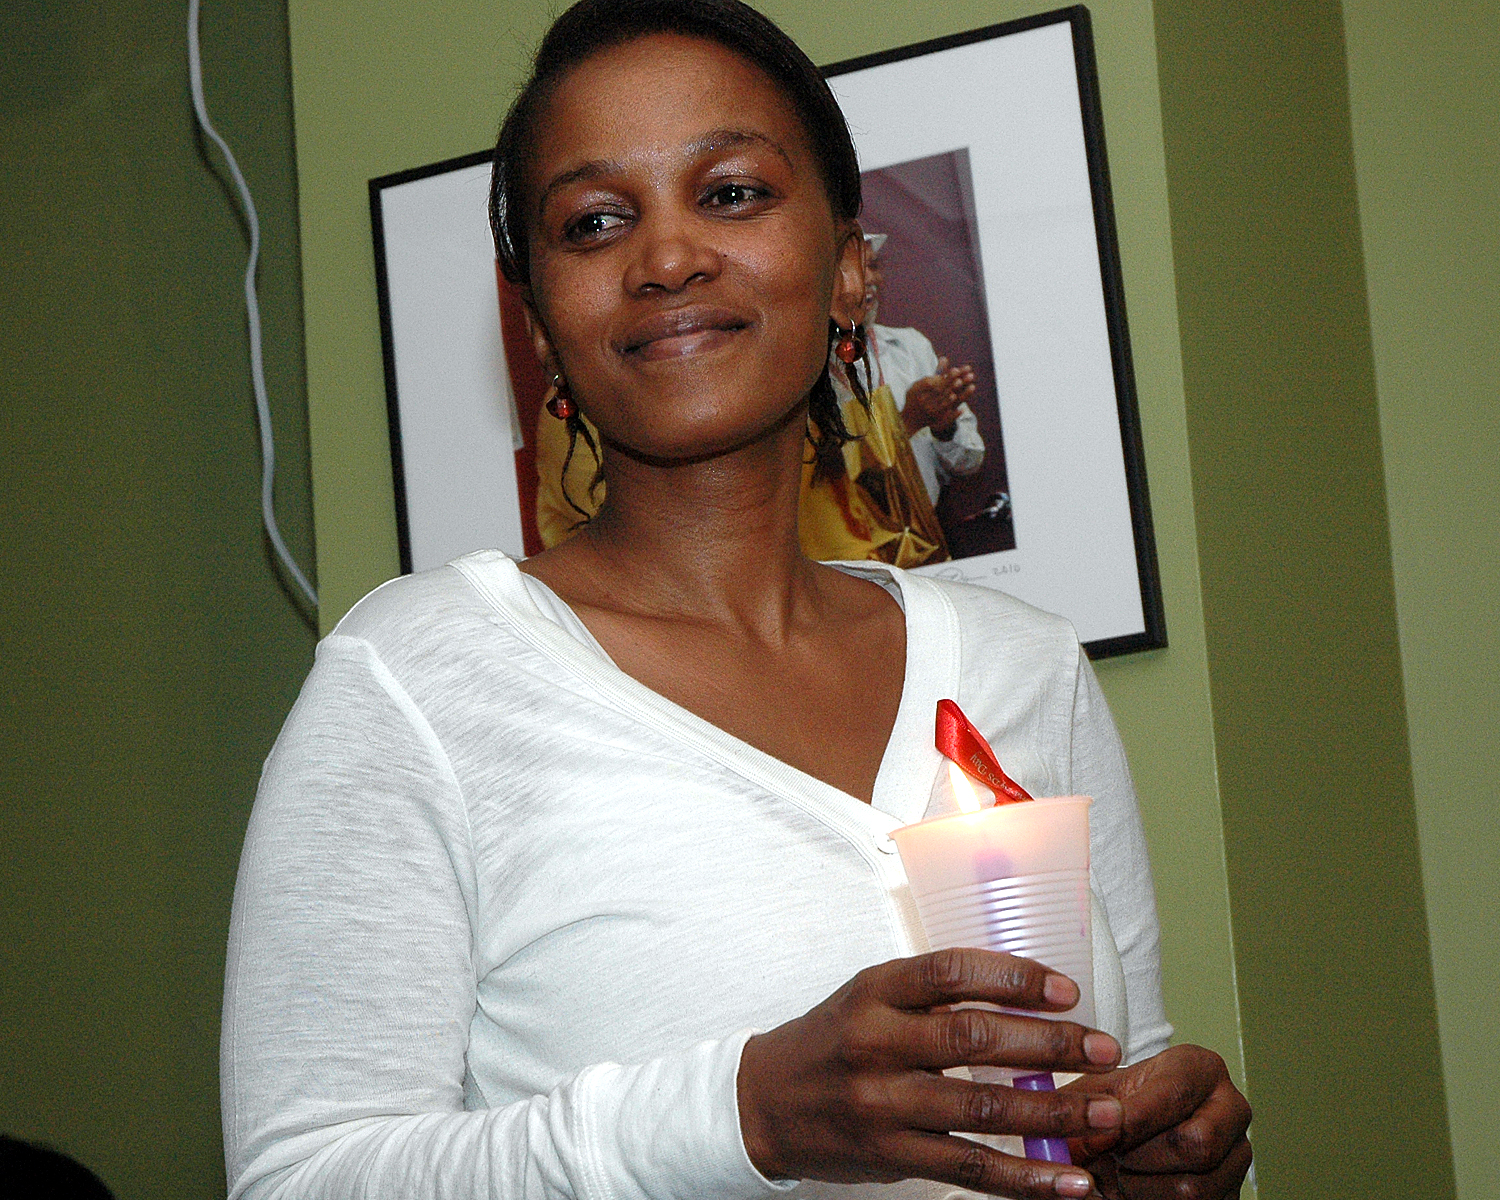 Getting To Zero - Zero New HIV Infections (Skits) - Nozipho Sibanyoni